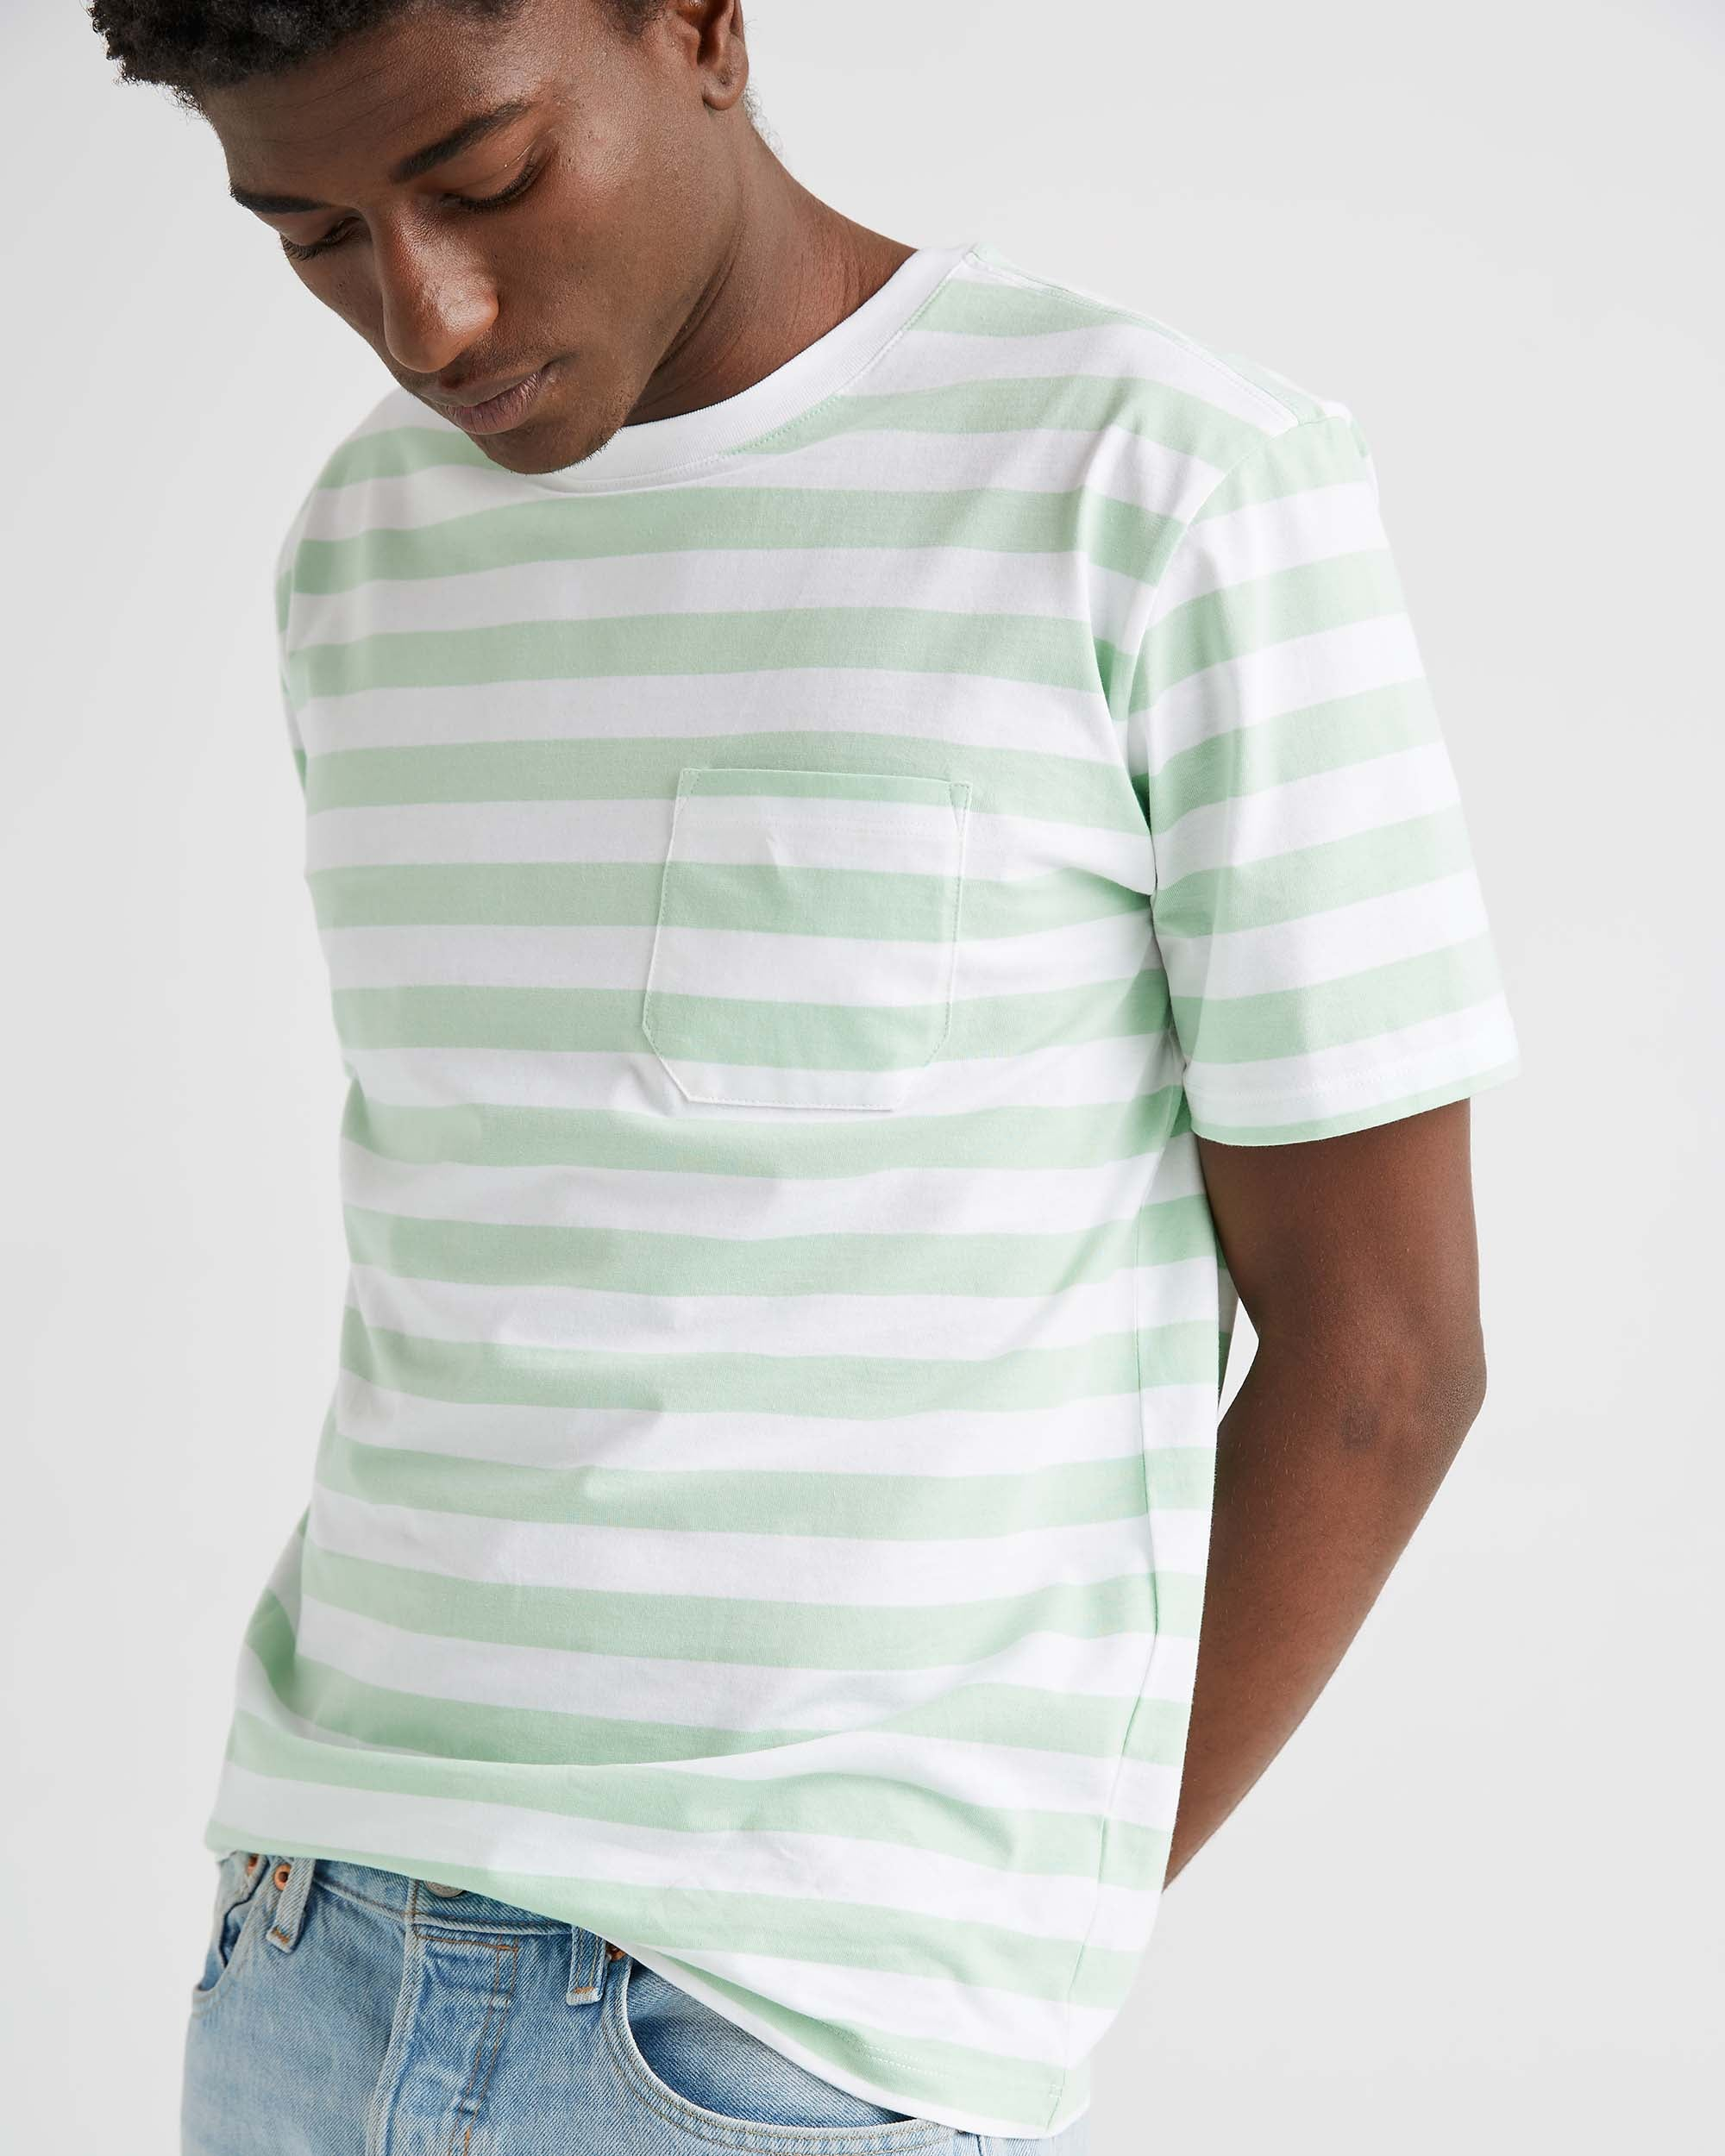 SS Striped Pocket Tee